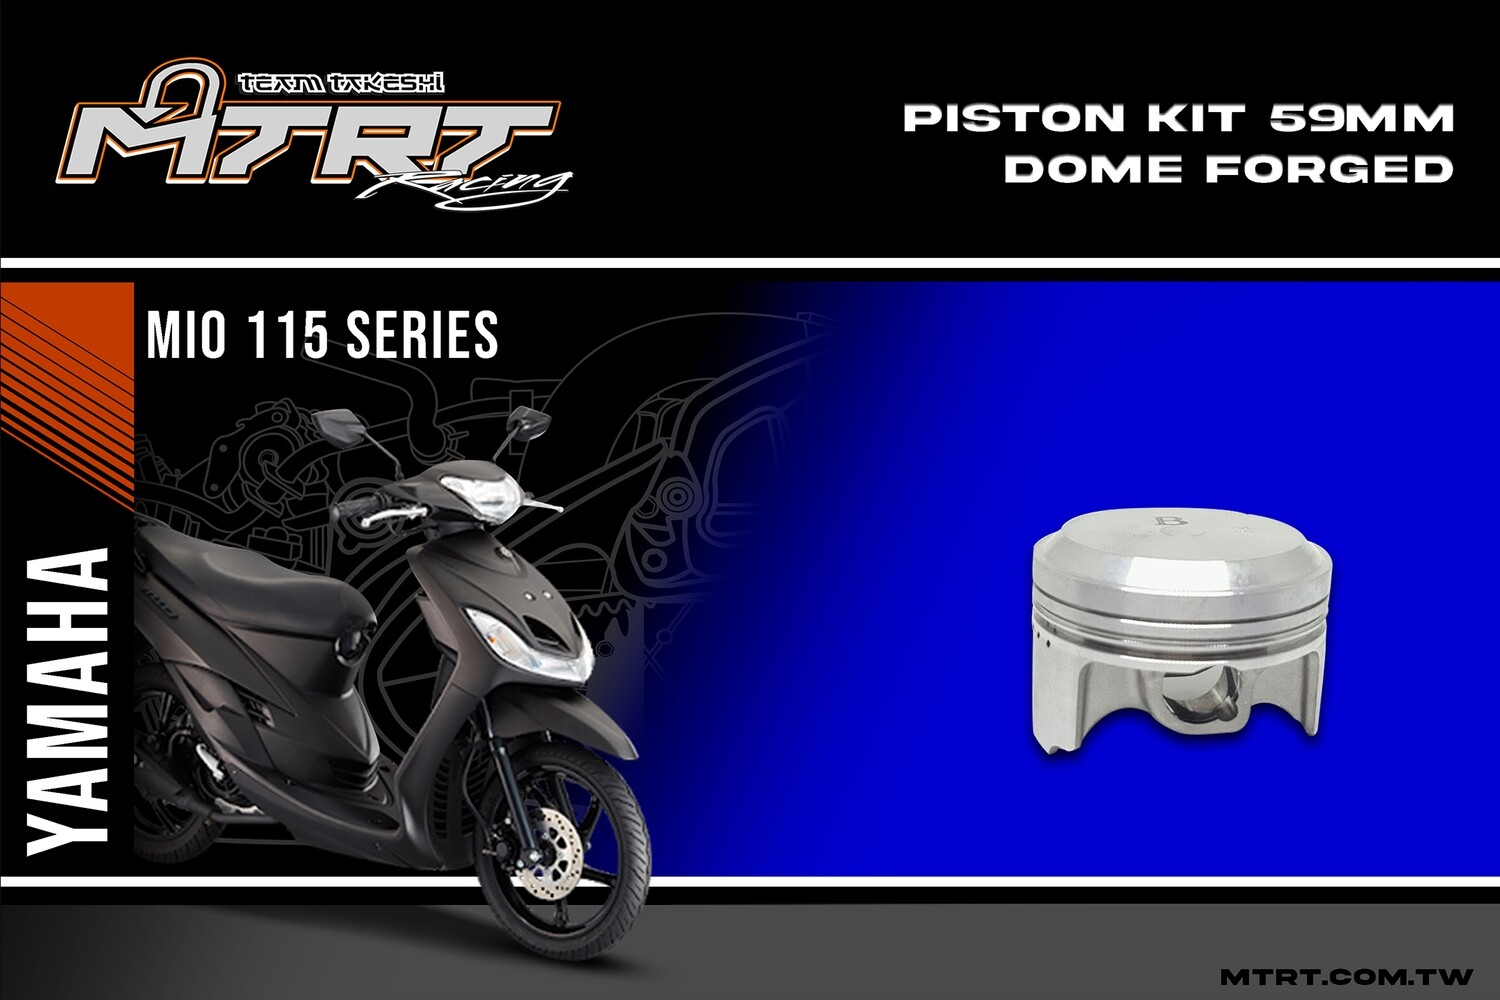 PISTON KIT 59MM DOME FORGED